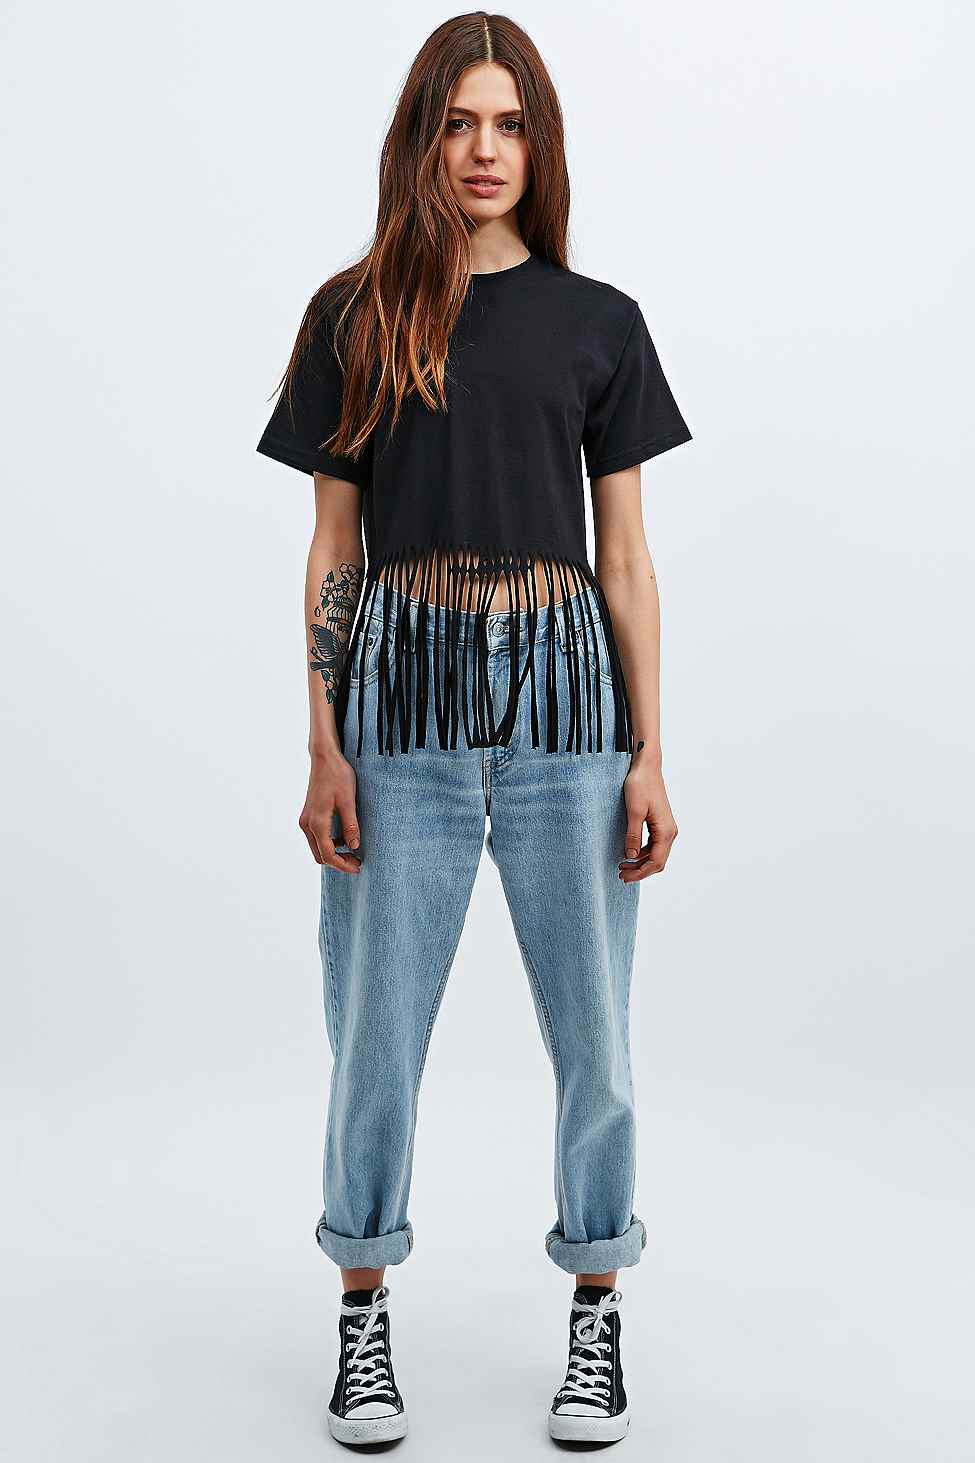 Urban Outfitters - T-shirt(35 €)